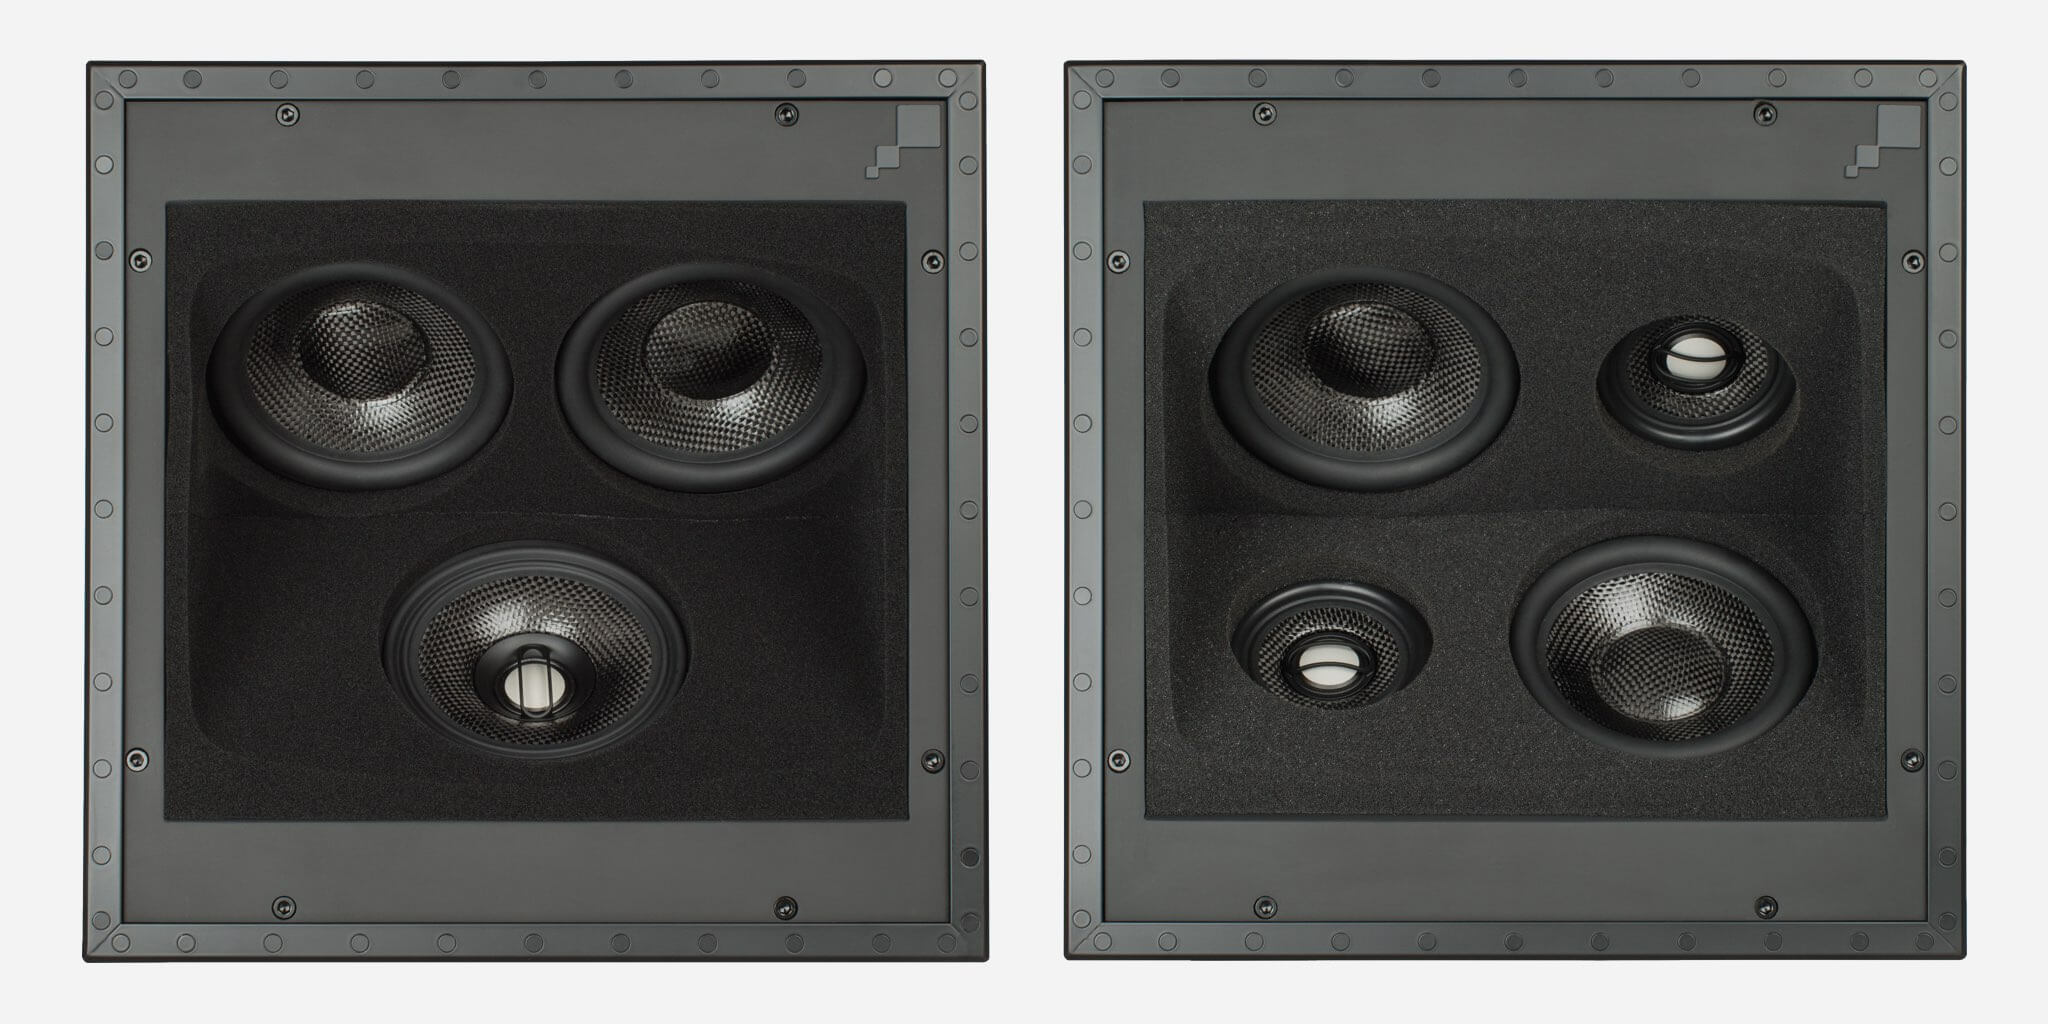 Sonance_Reference_Series_In-ceiling_R1_R1CSUR_JPEG_2048x1024_60%